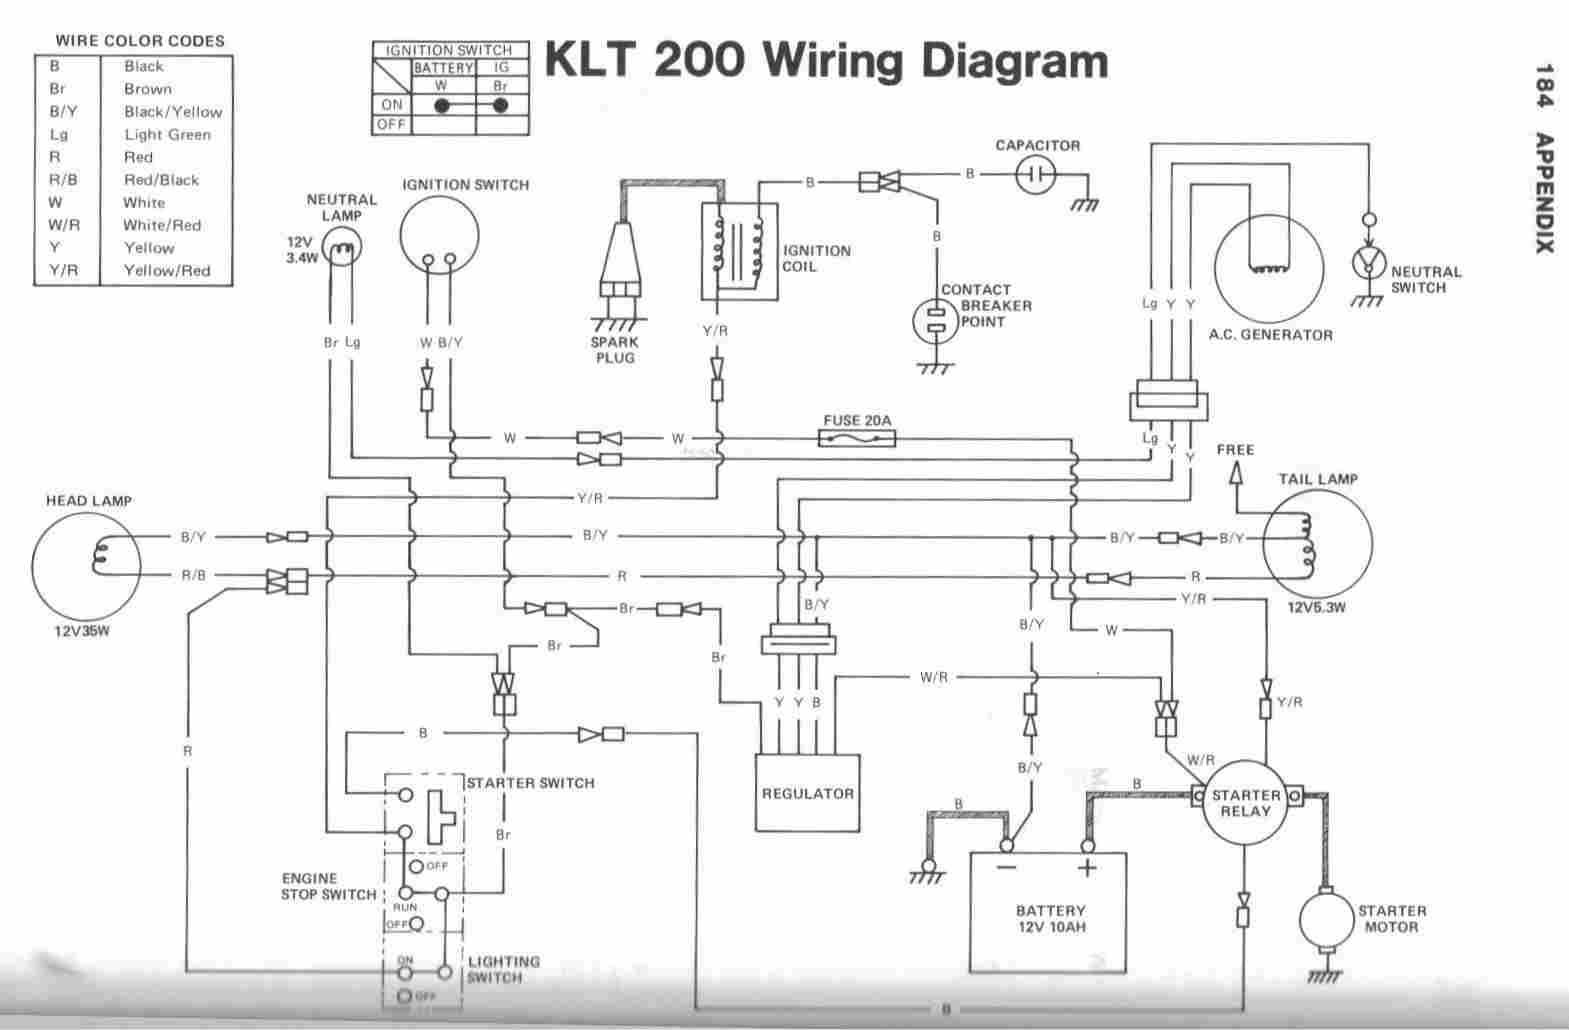 2869034594ce054a636782e5c44b61b4 residential electrical wiring diagrams pdf easy routing cool electrical wiring diagrams at bayanpartner.co